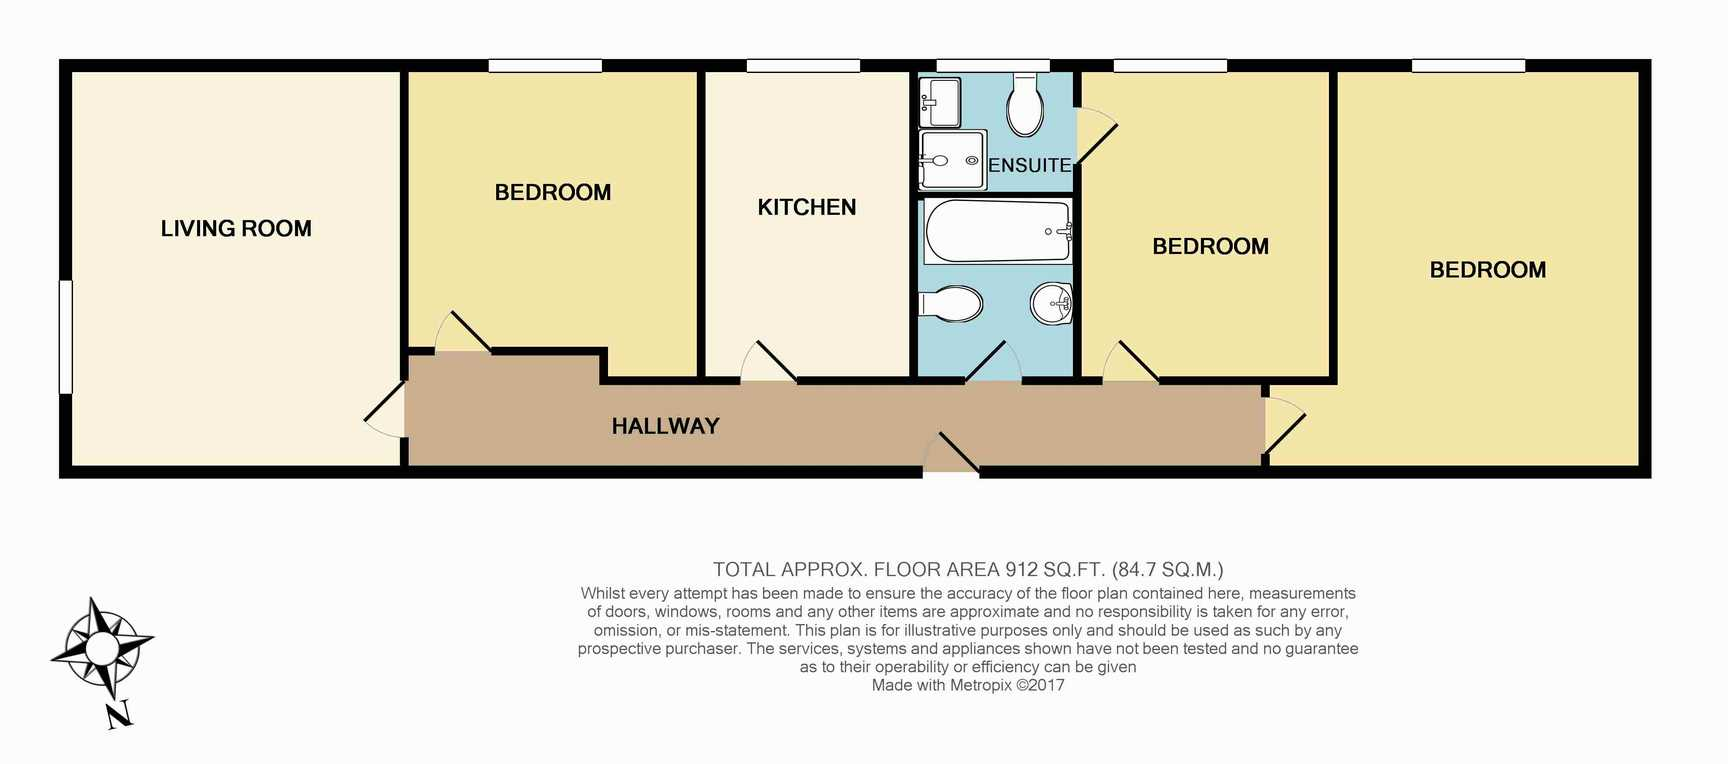 3 Bedroom Flat For Sale 44279118 Primelocation Make Your Own Beautiful  HD Wallpapers, Images Over 1000+ [ralydesign.ml]